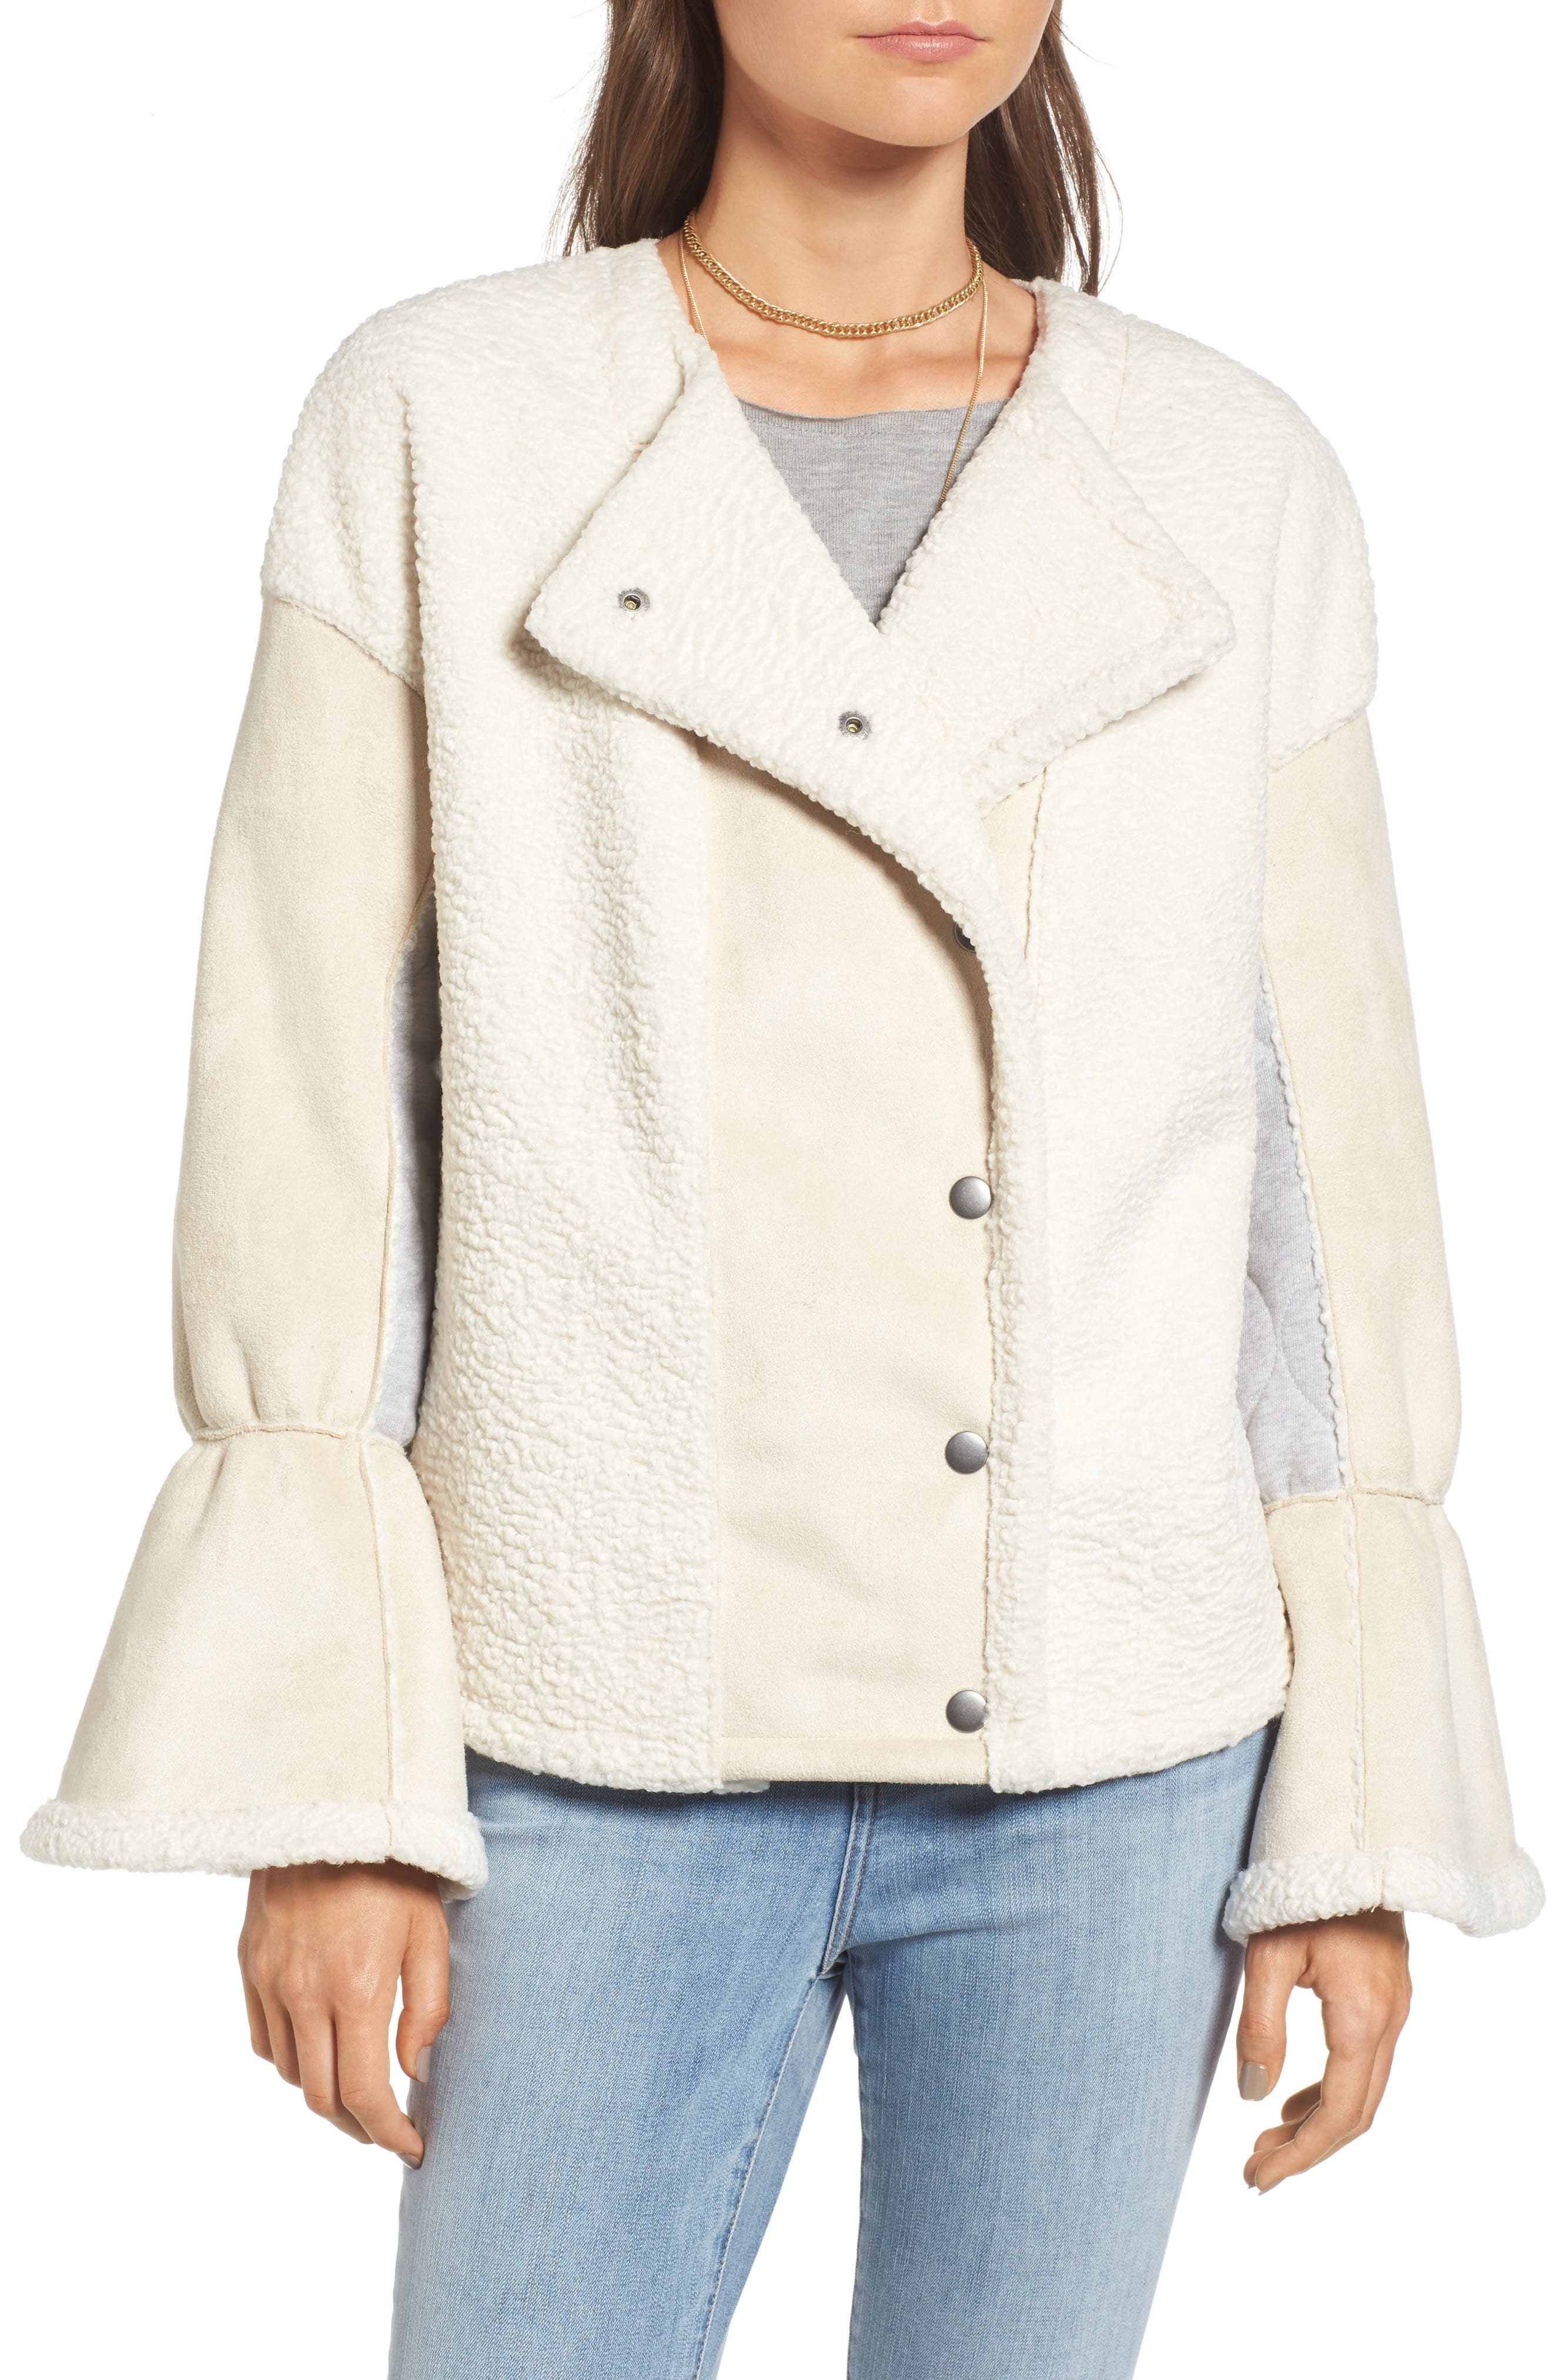 x Something Navy Bell Sleeve Faux Shearling Jacket,                             Alternate thumbnail 5, color,                             Ivory Combo